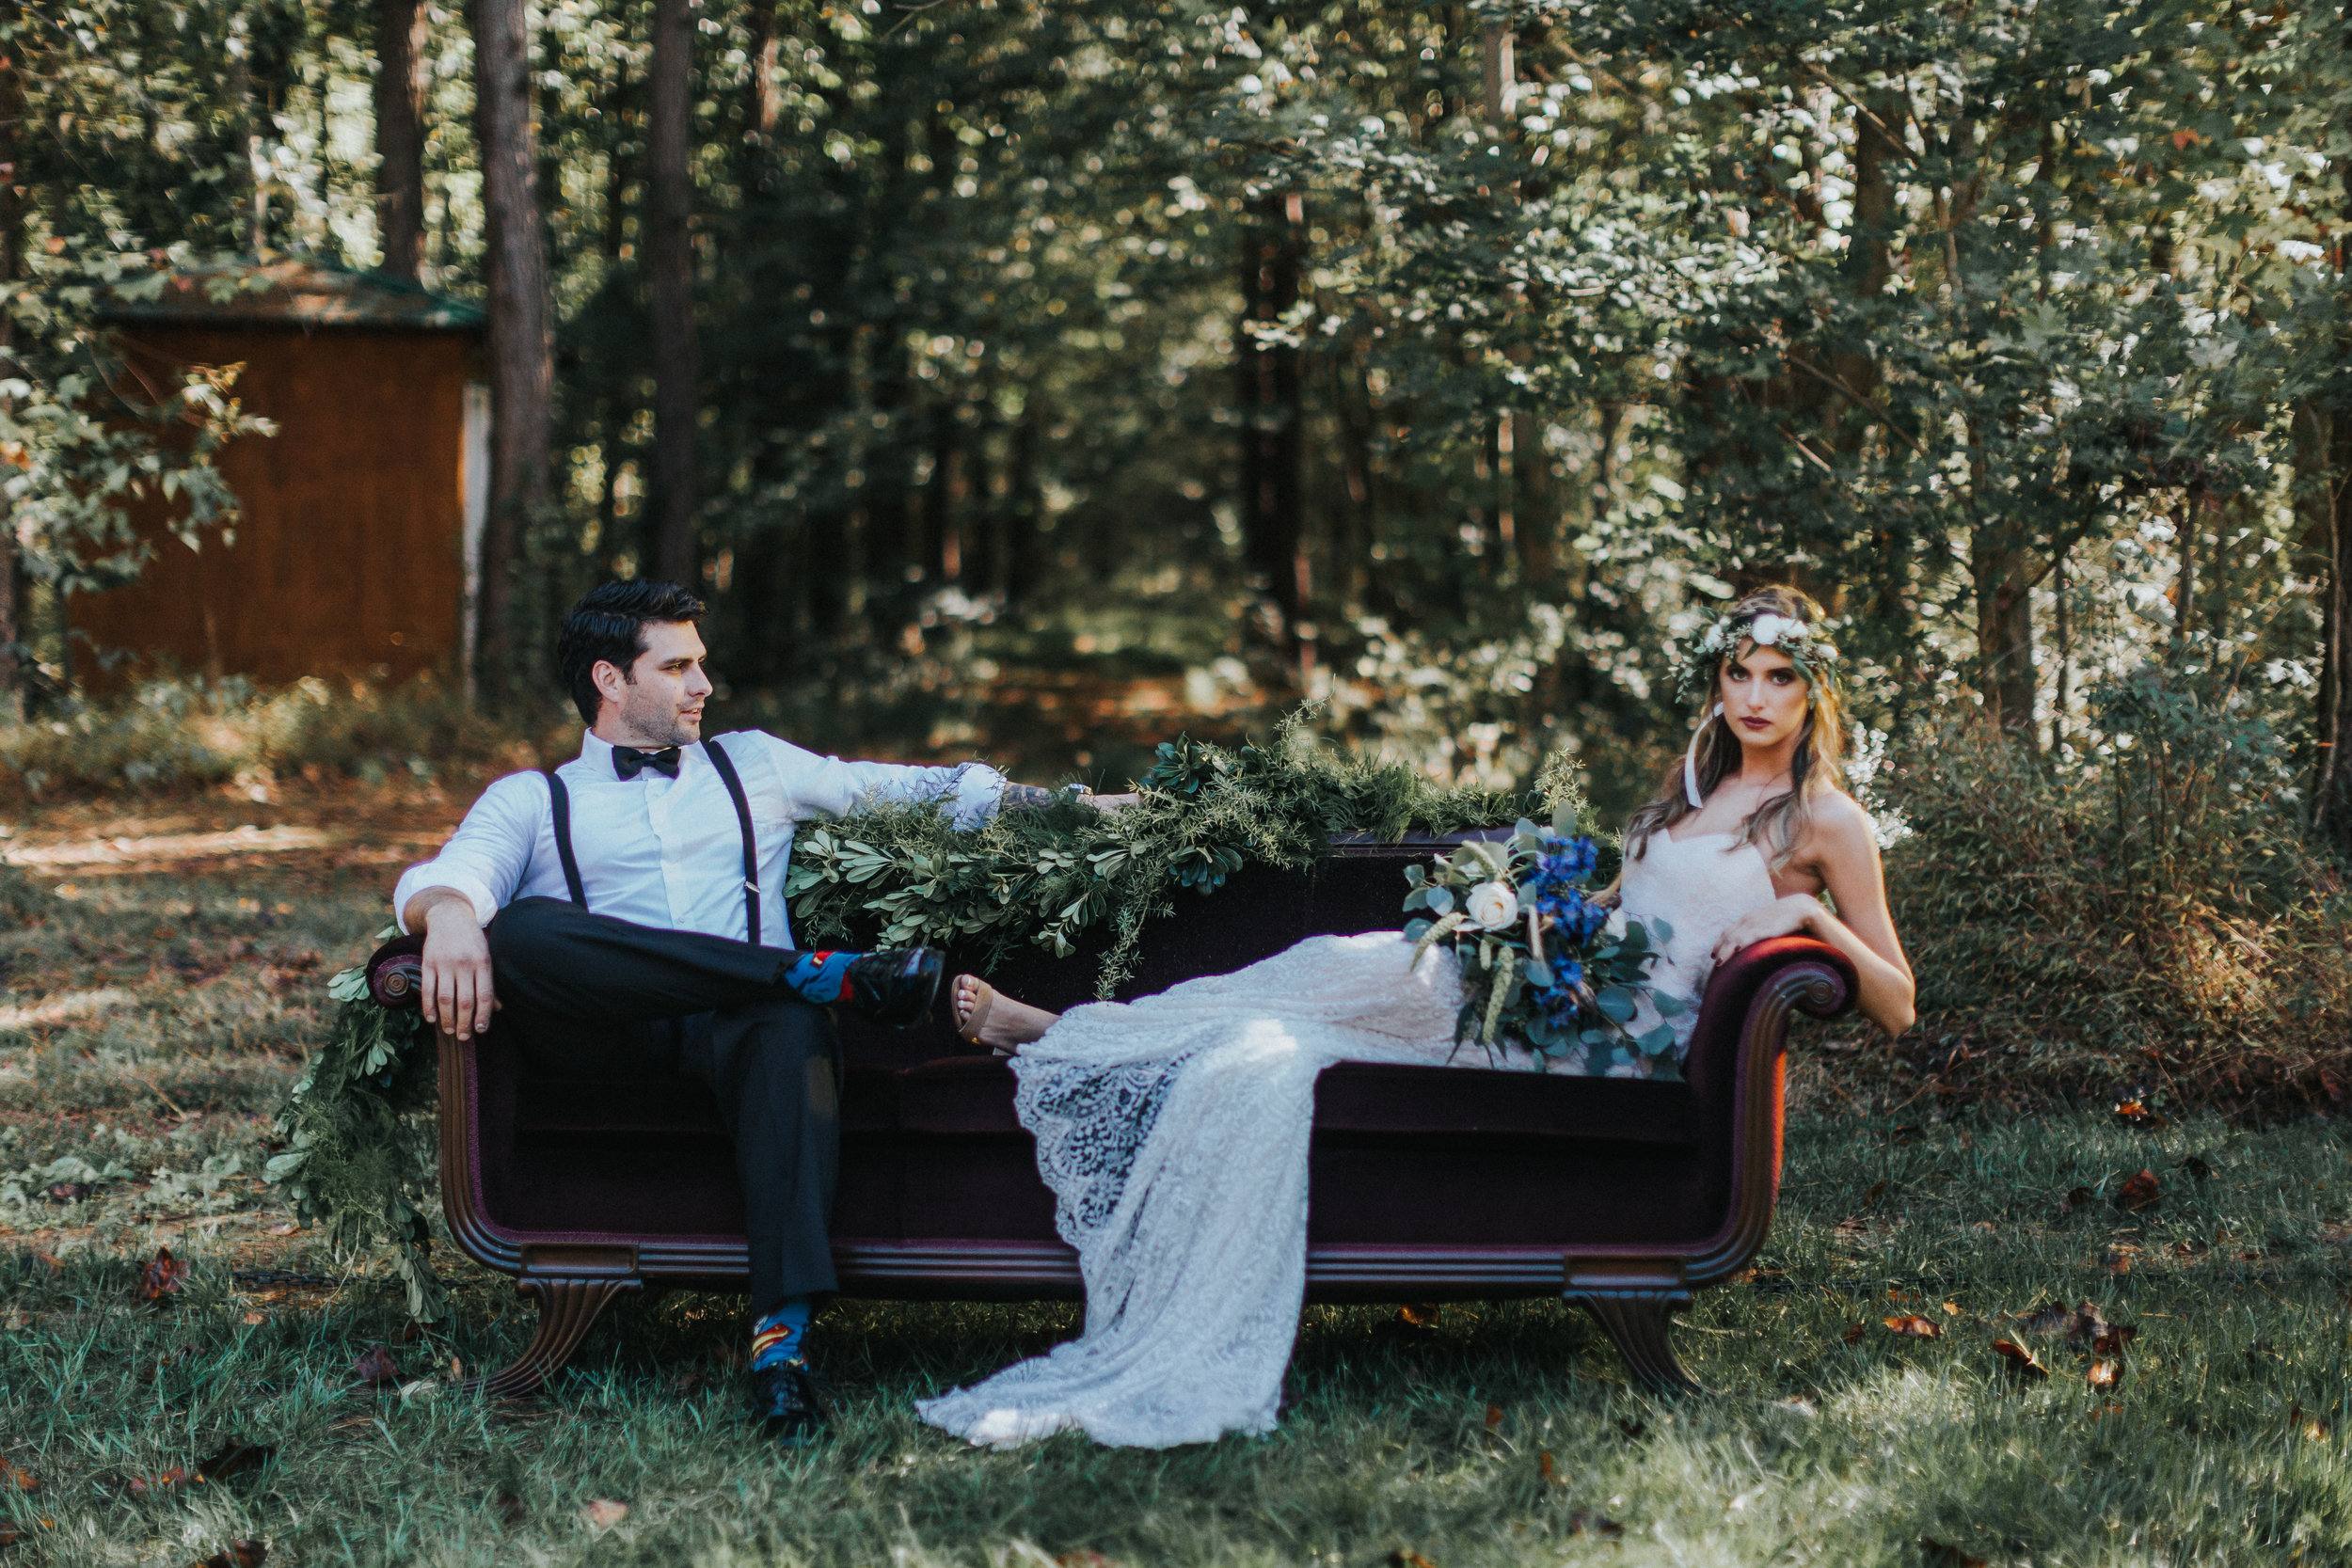 Bride and Groom - Bohemian Styled Shoot at Hiwassee River Weddings